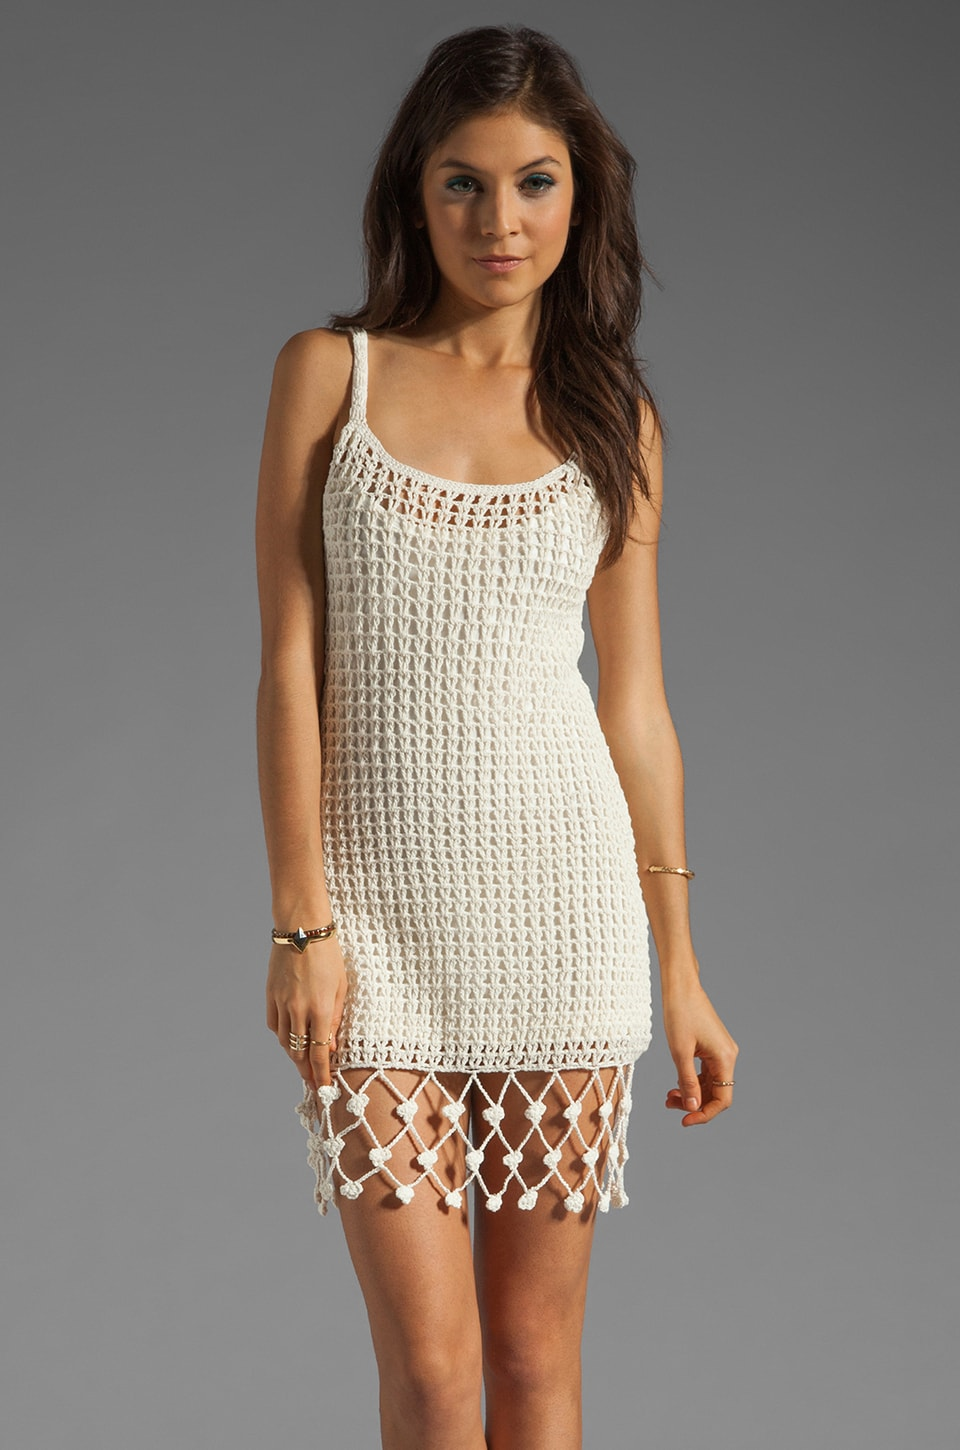 Ladakh Breathe Easy Dress in Cream